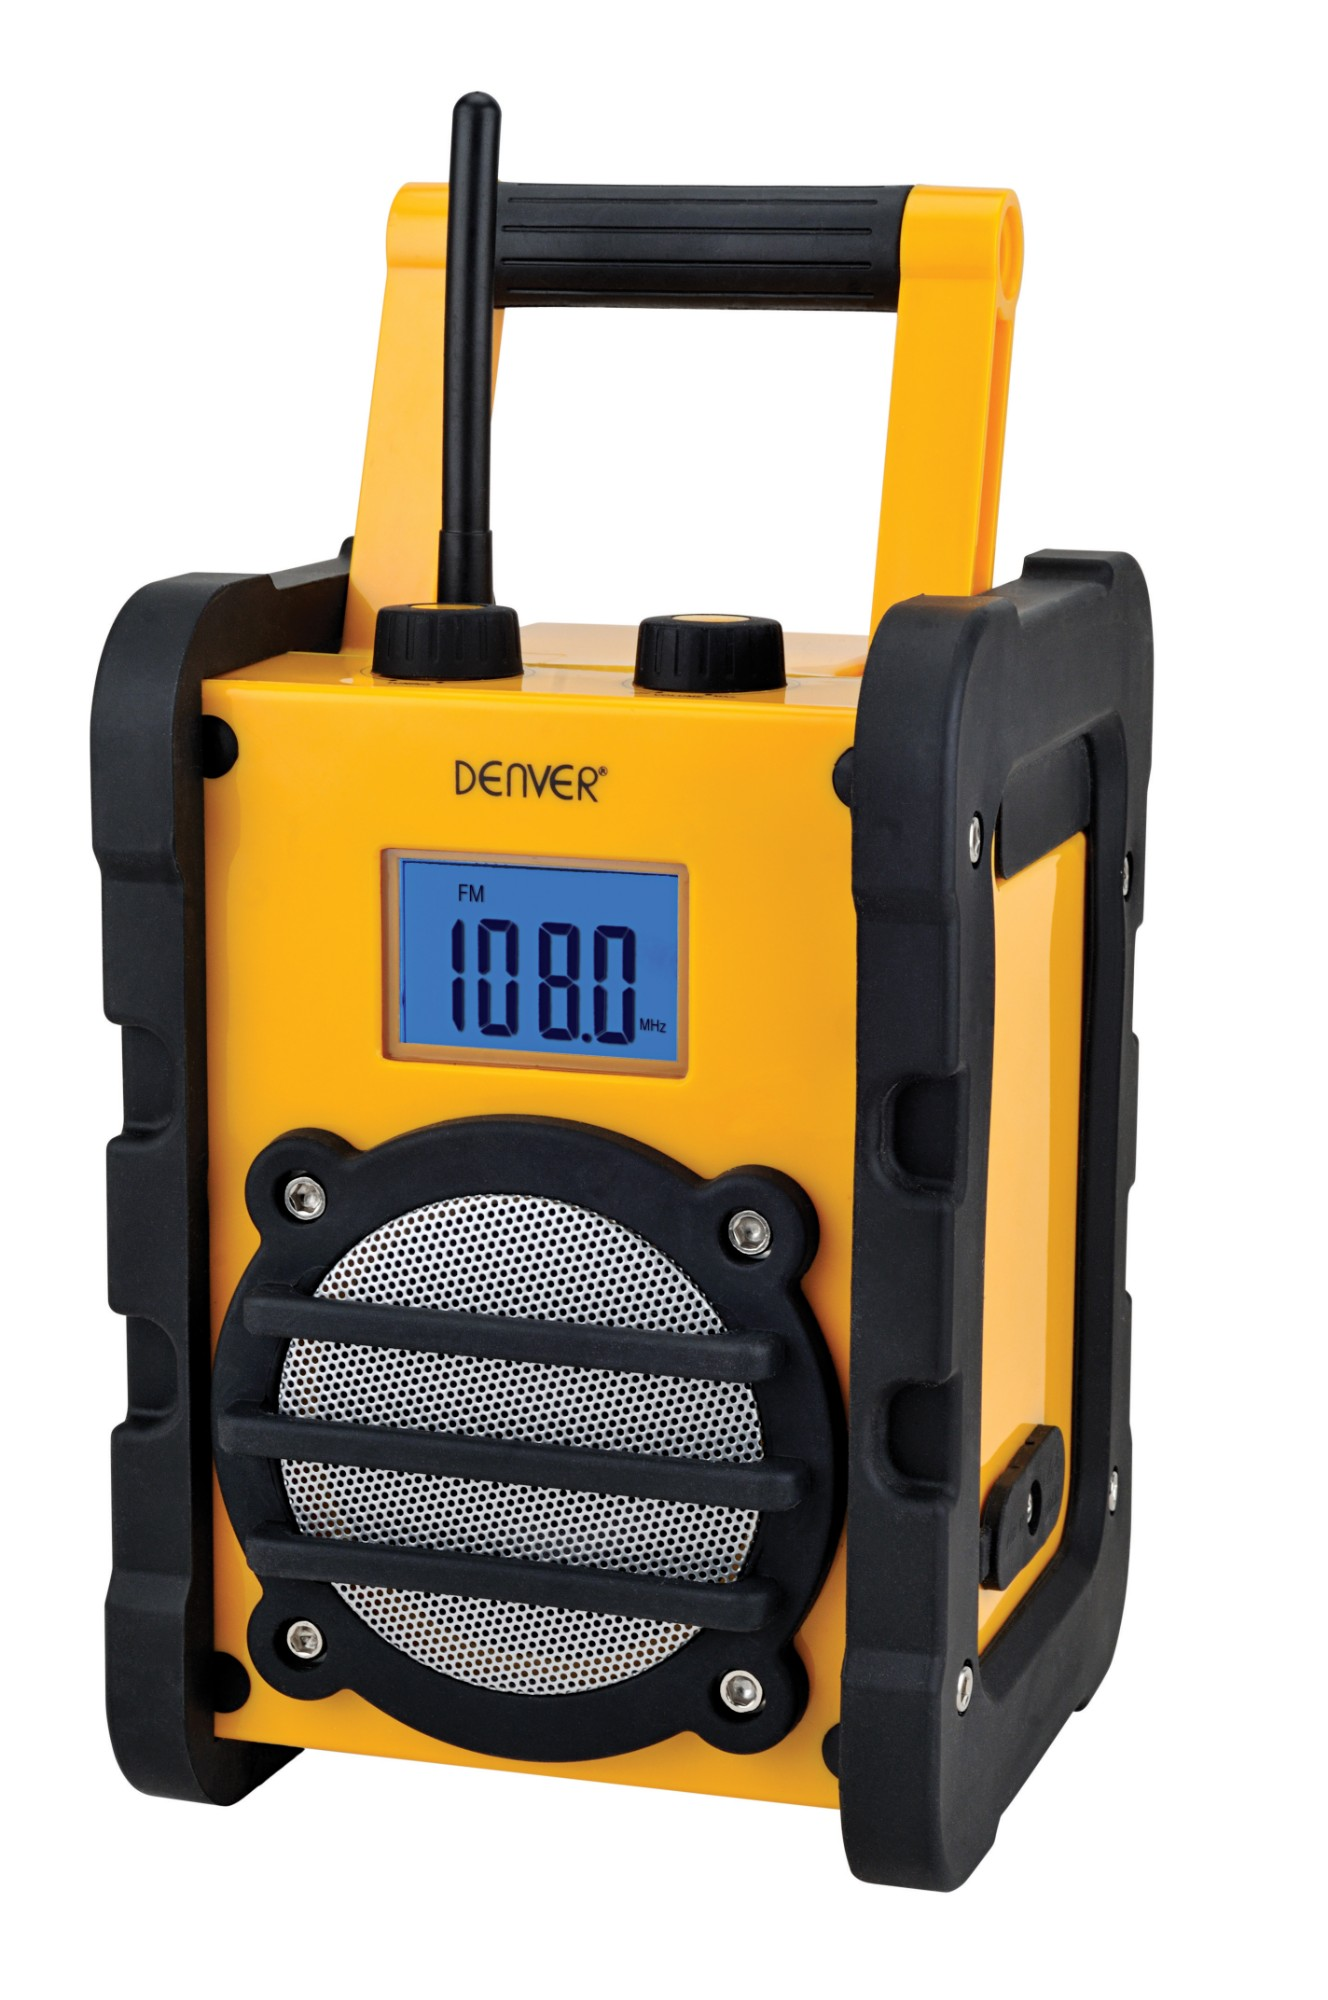 Denver Electronics WR-40 MK3 (3 PCS/EX. CARTON) Portable Analog Black, Yellow radio